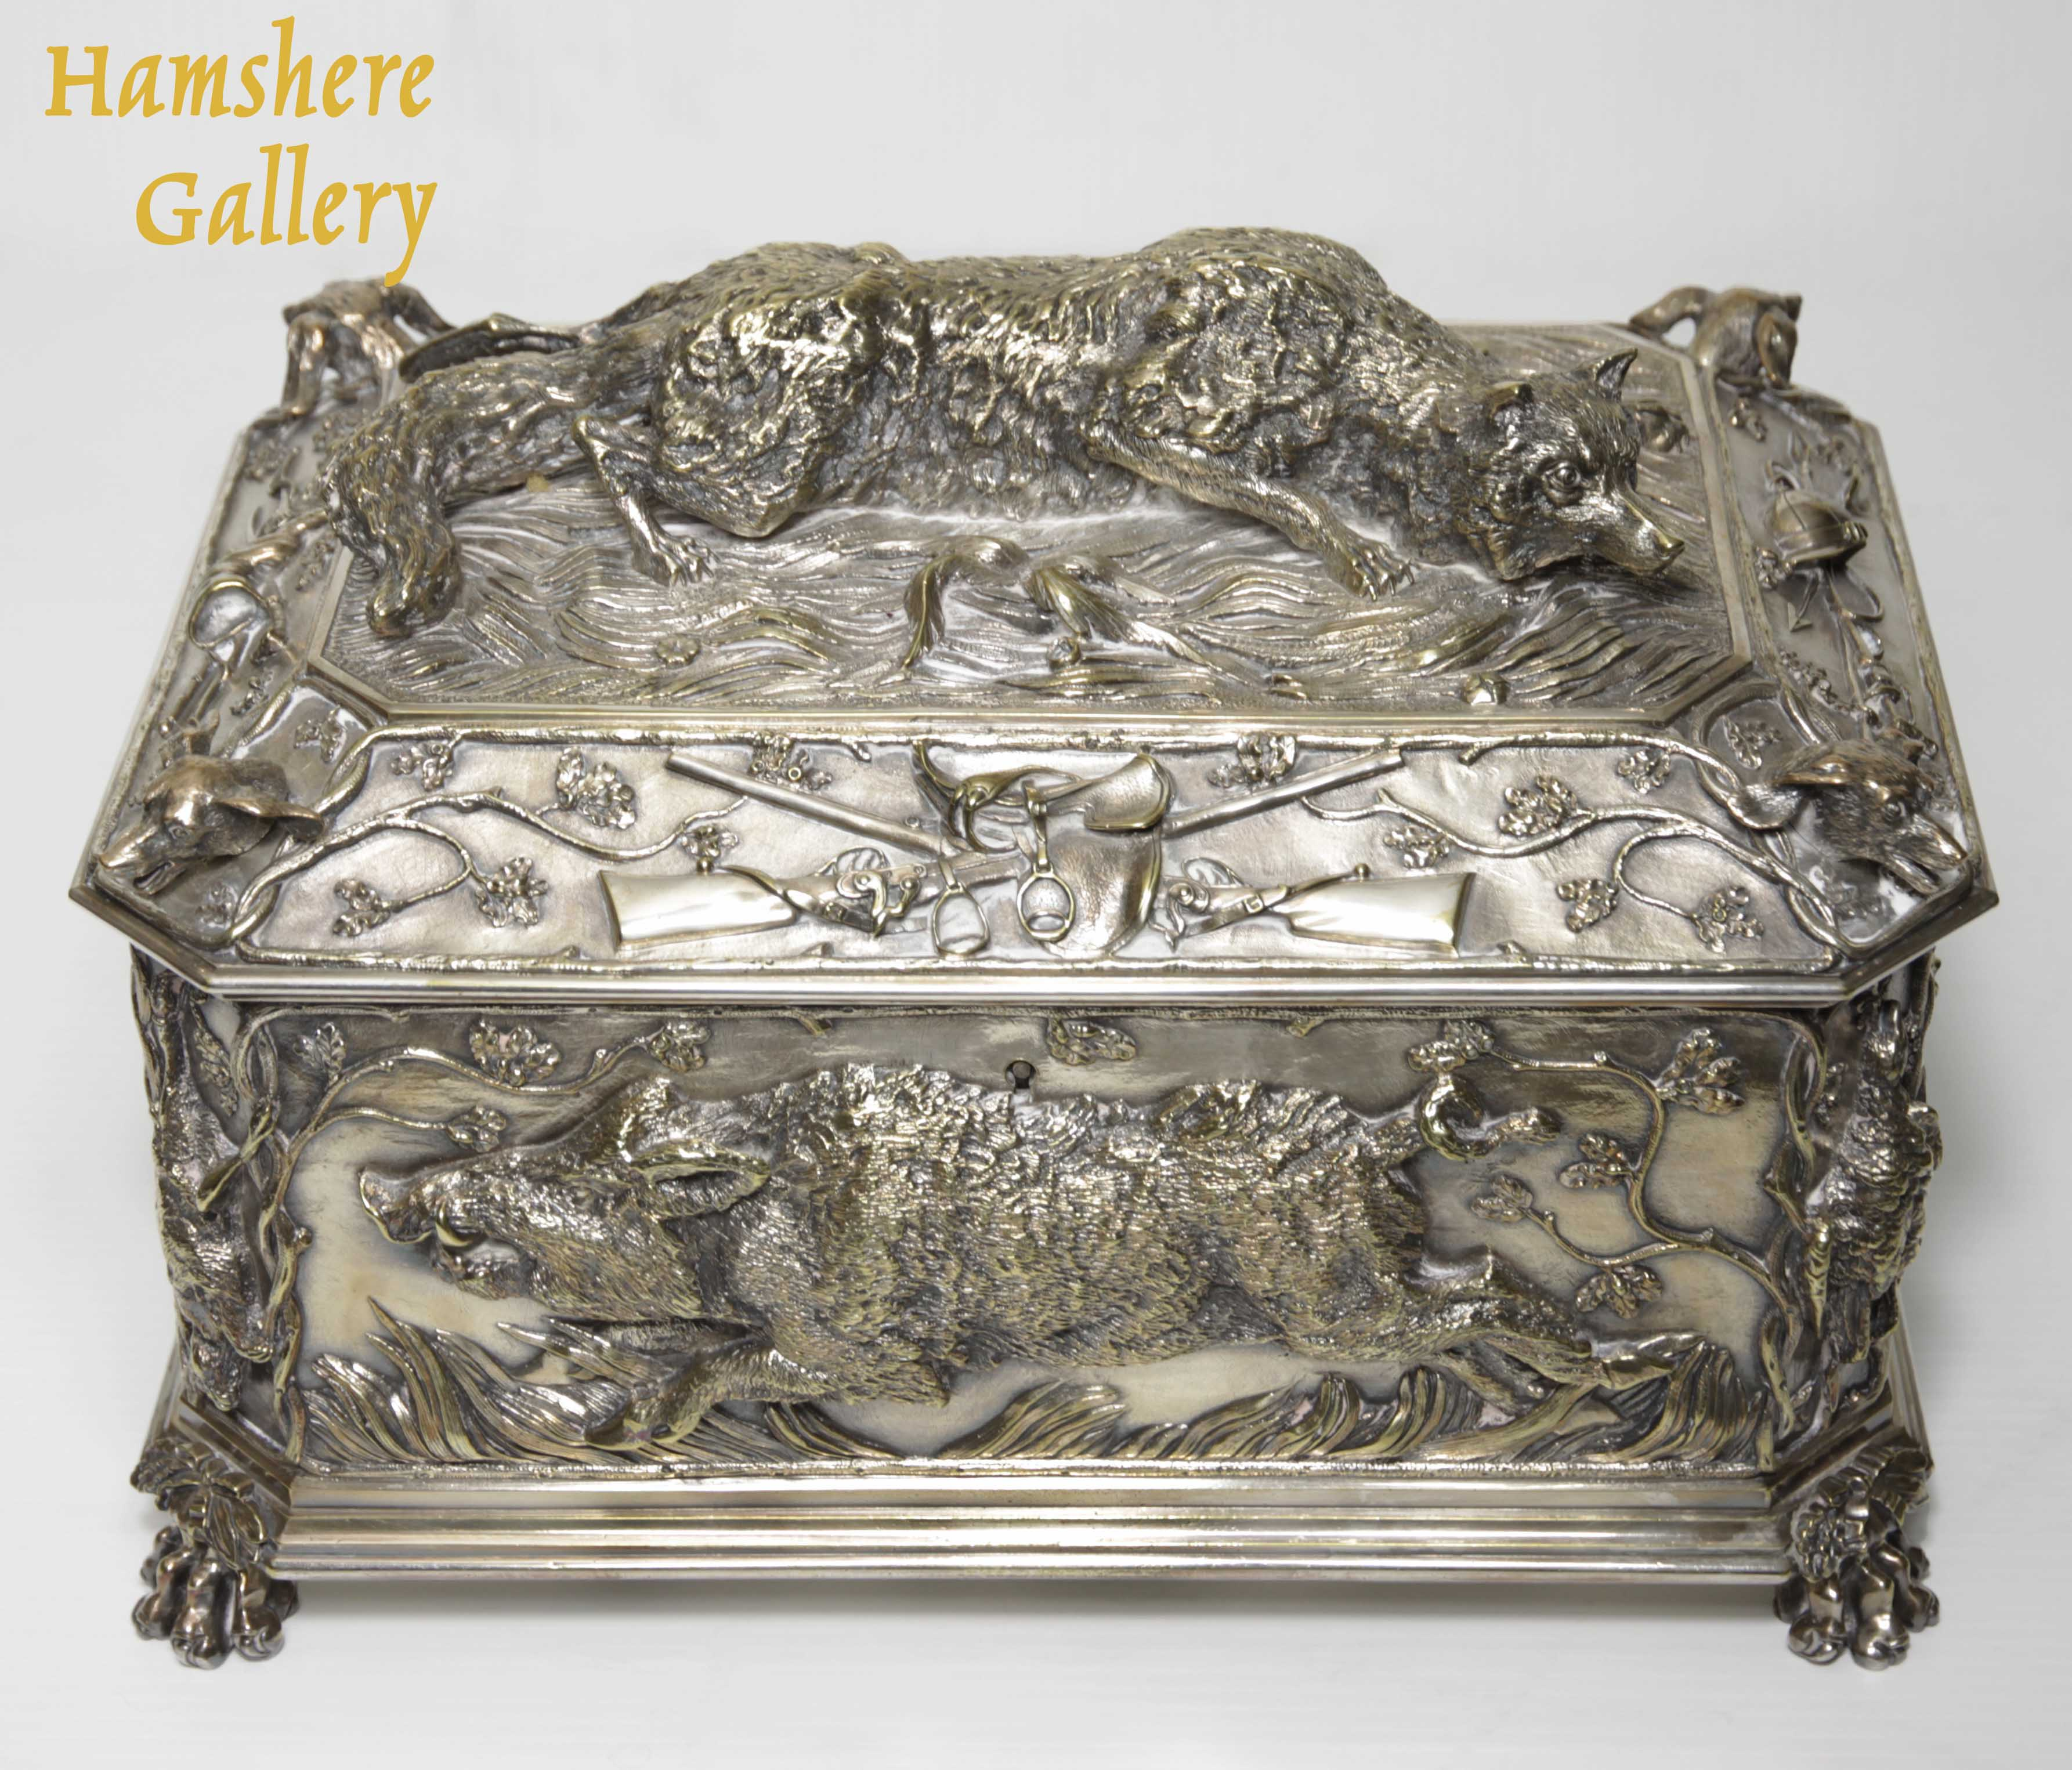 """Click for larger image: A very large, French, 19th century, silver bronze hunting / """"La Chasse"""" jewellery box / casket of boar, fox, hound and game bird, attributable to Jules Moigniez (French, 1835-1894) - A very large, French, 19th century, silver bronze hunting / """"La Chasse"""" jewellery box / casket of boar, fox, hound and game bird, attributable to Jules Moigniez (French, 1835-1894)"""